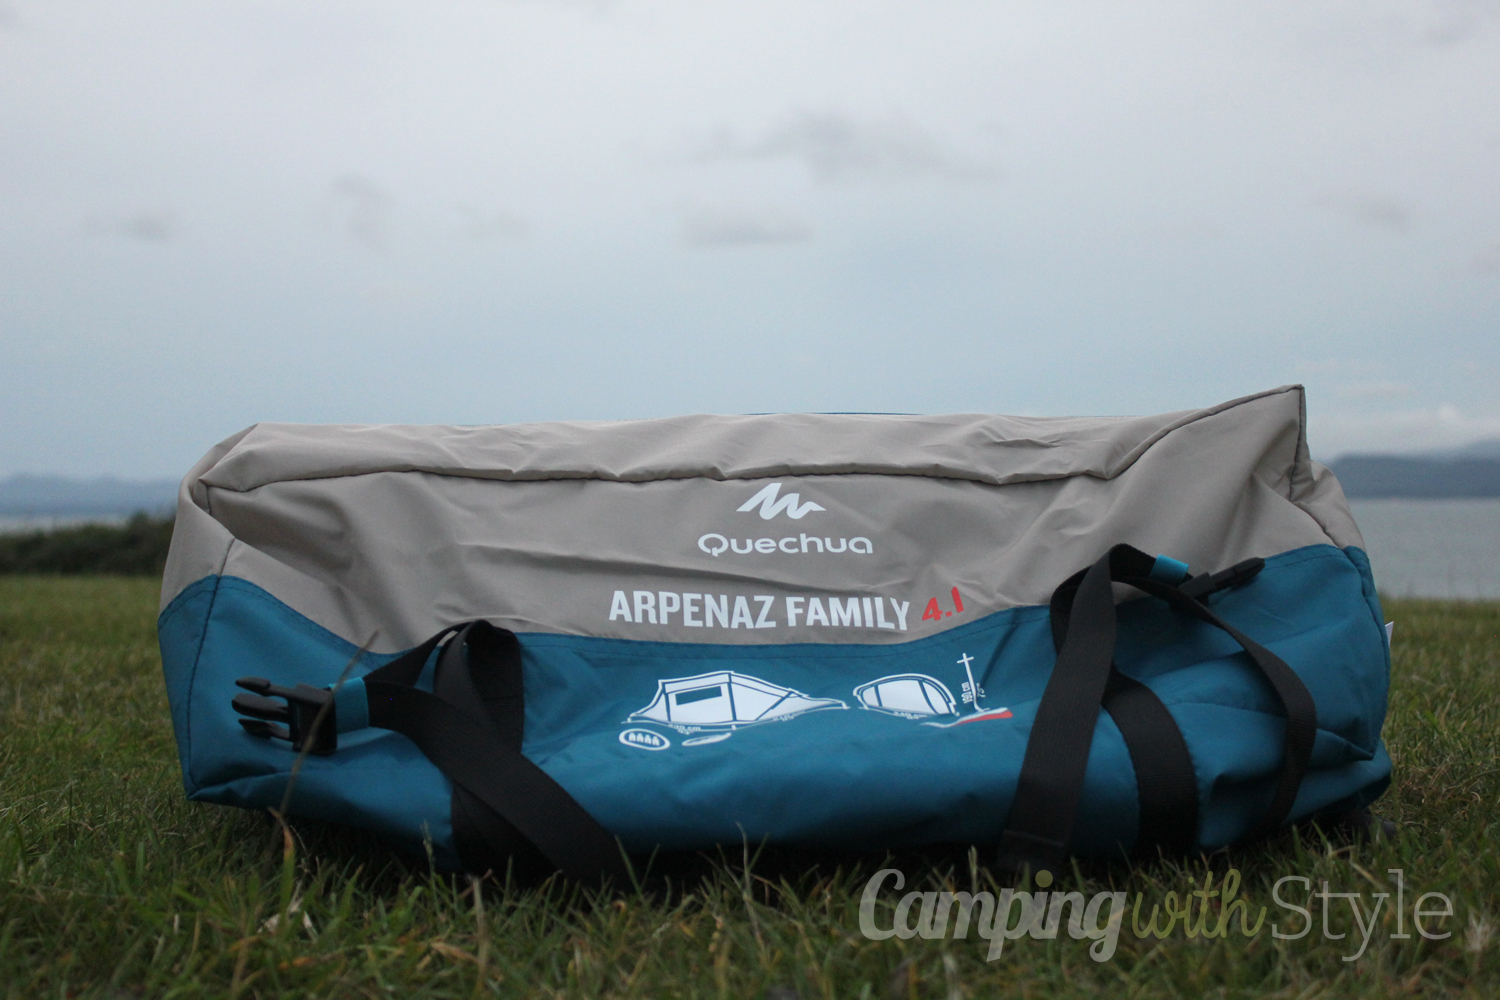 Bedroom Adventure Gear Decathlon Quechua Arpenaz 4 1 Family 4 Man Tent Review